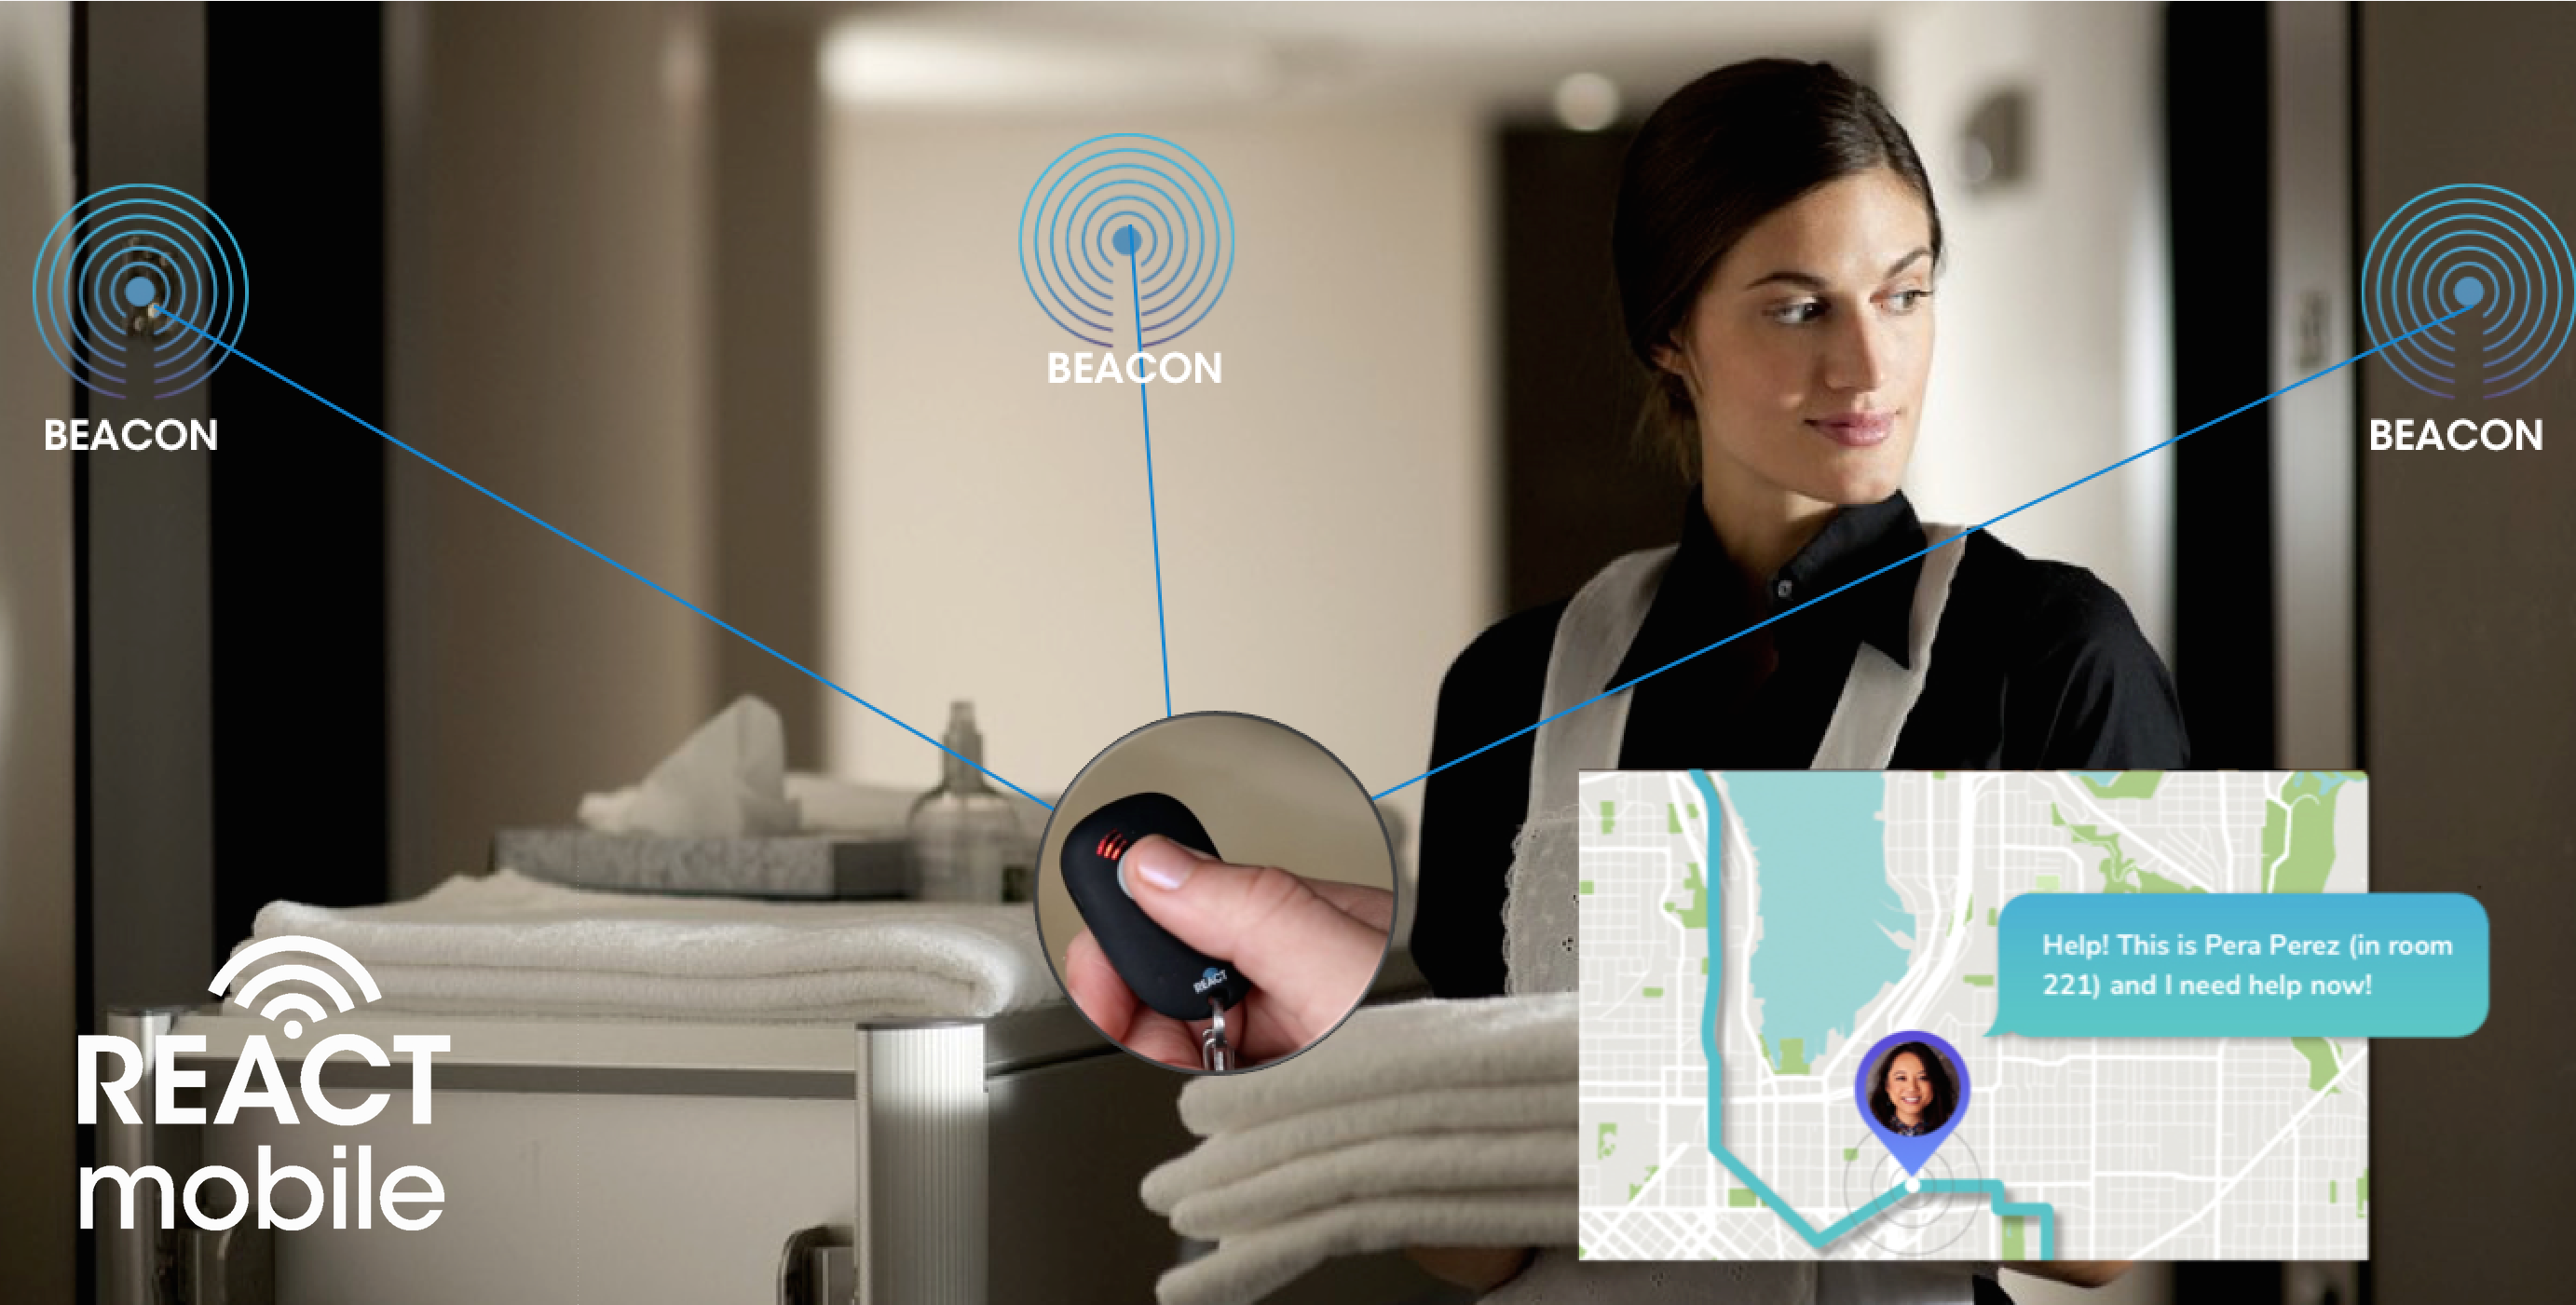 React Mobile Introduces Standalone Safety Device Hotel